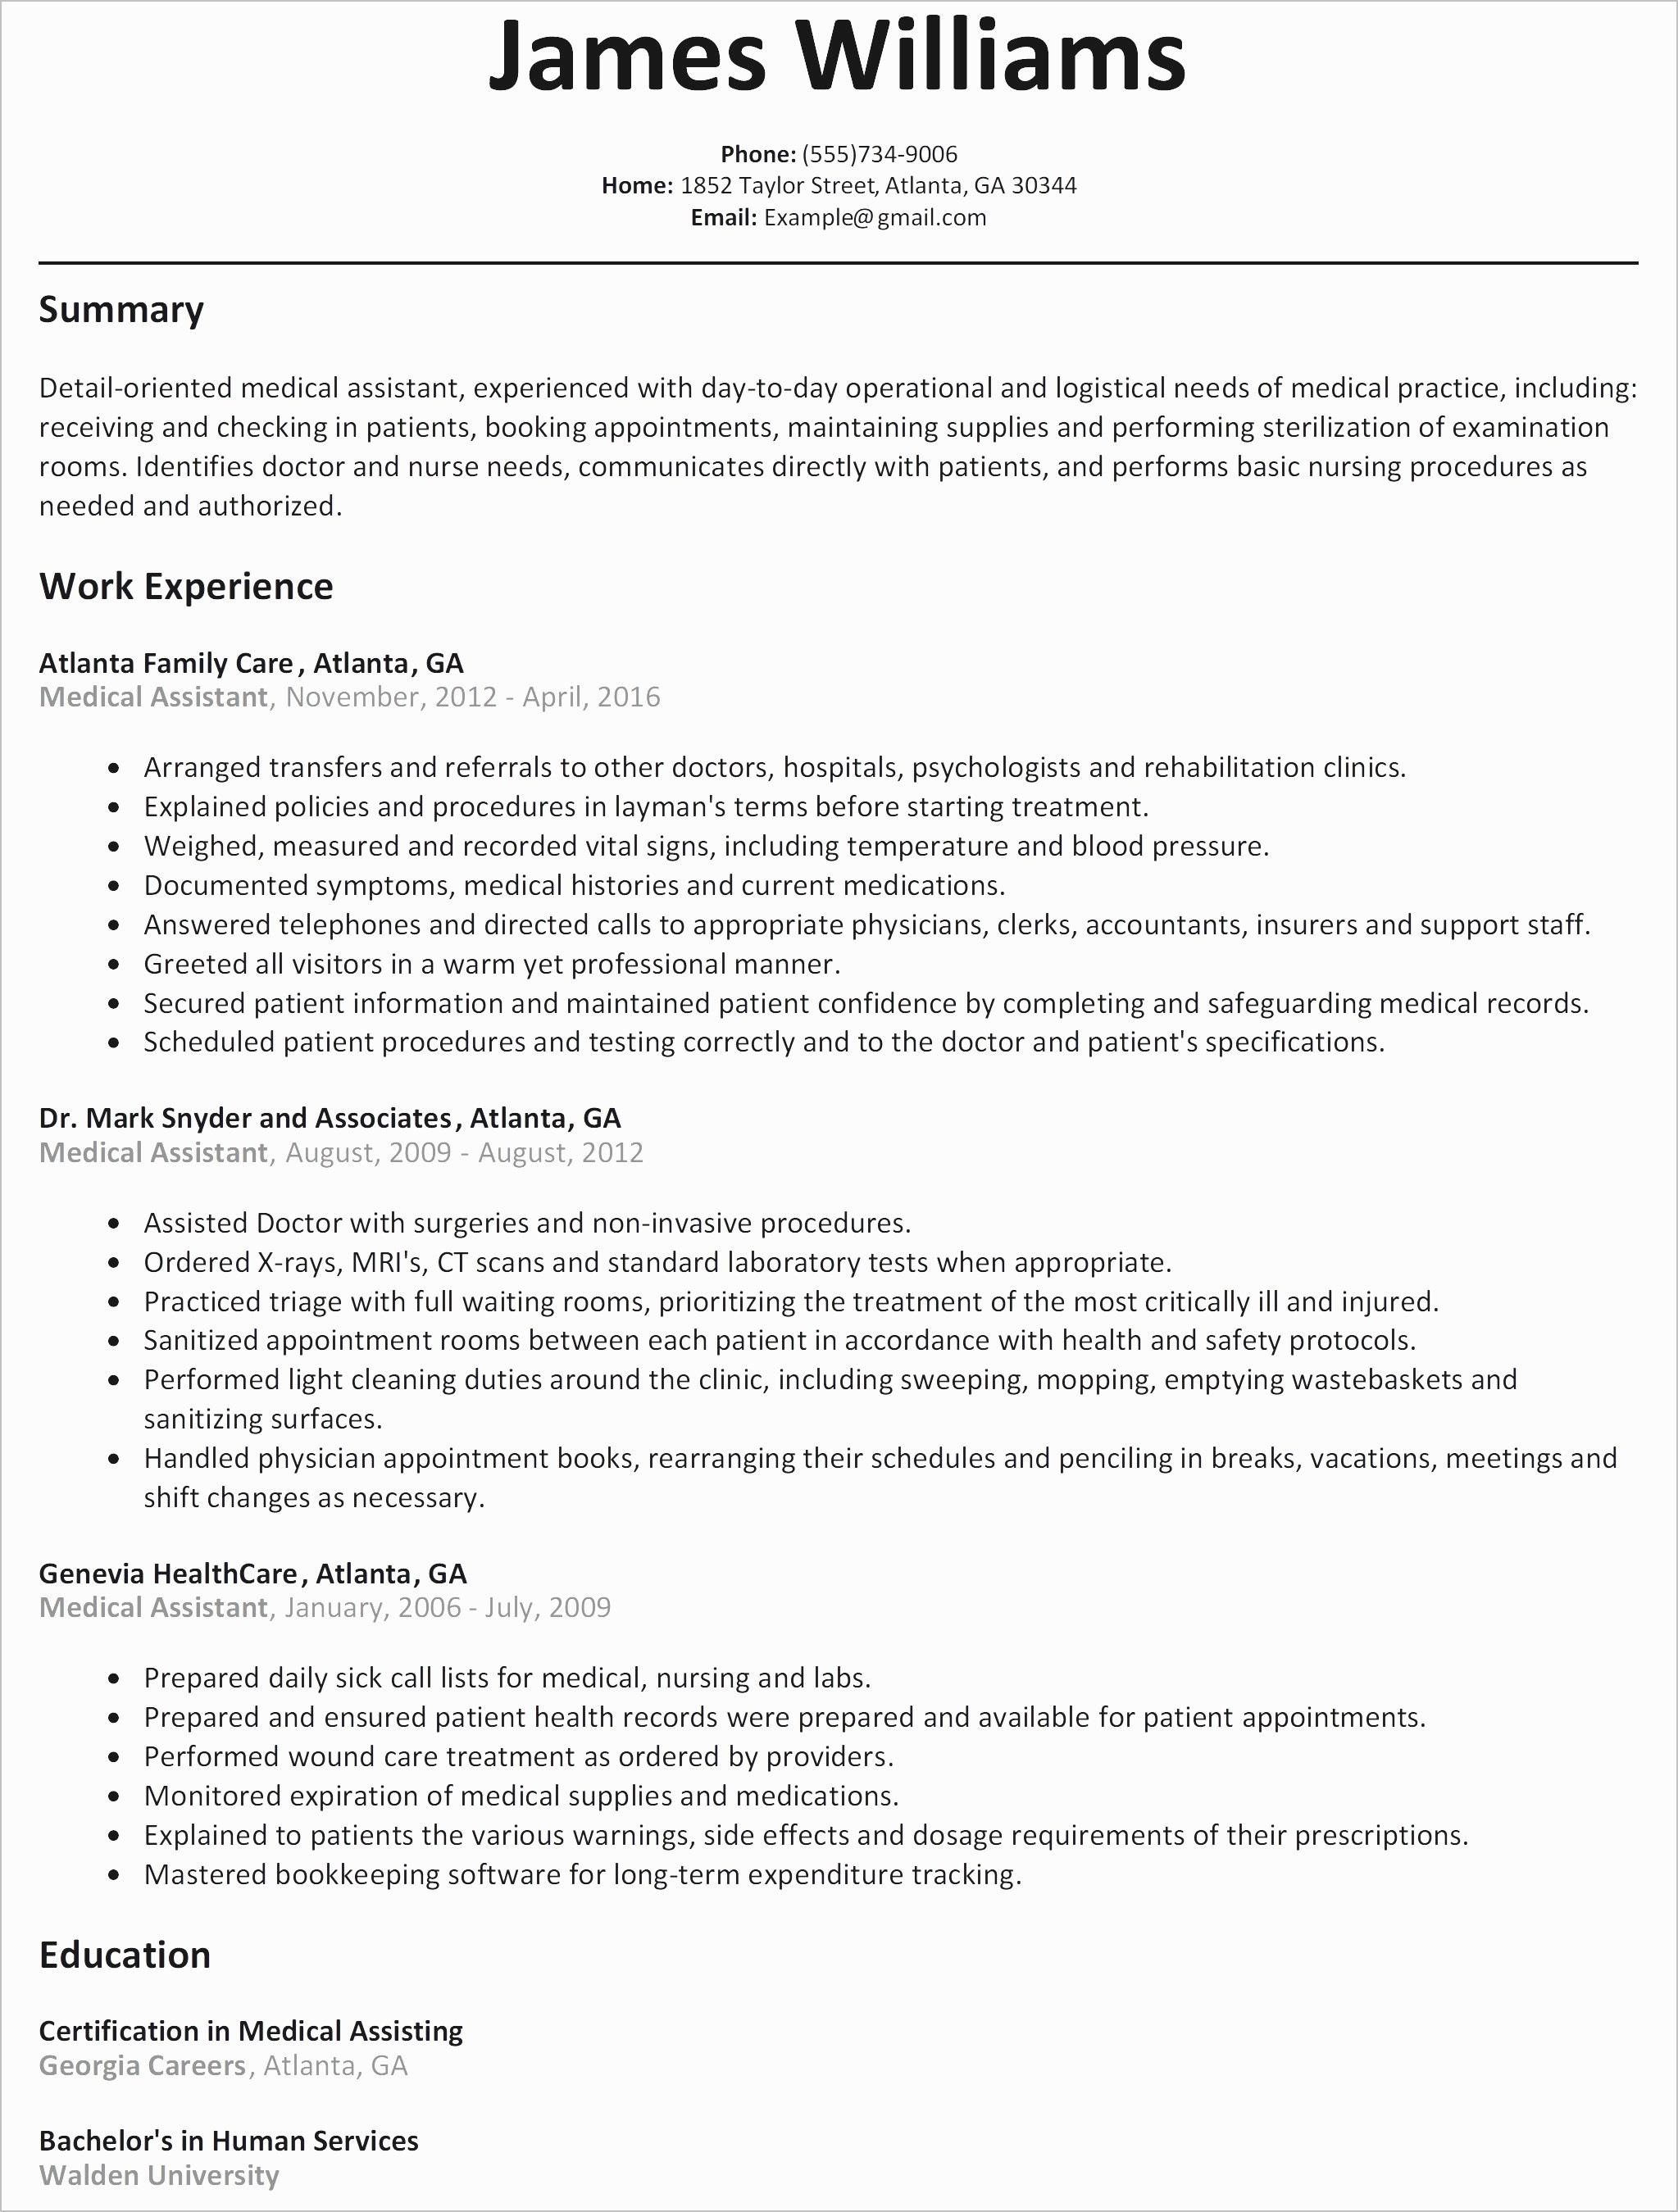 Electrician Resume Examples - Electrician Resume Examples Unique Journeyman Electrician Resume